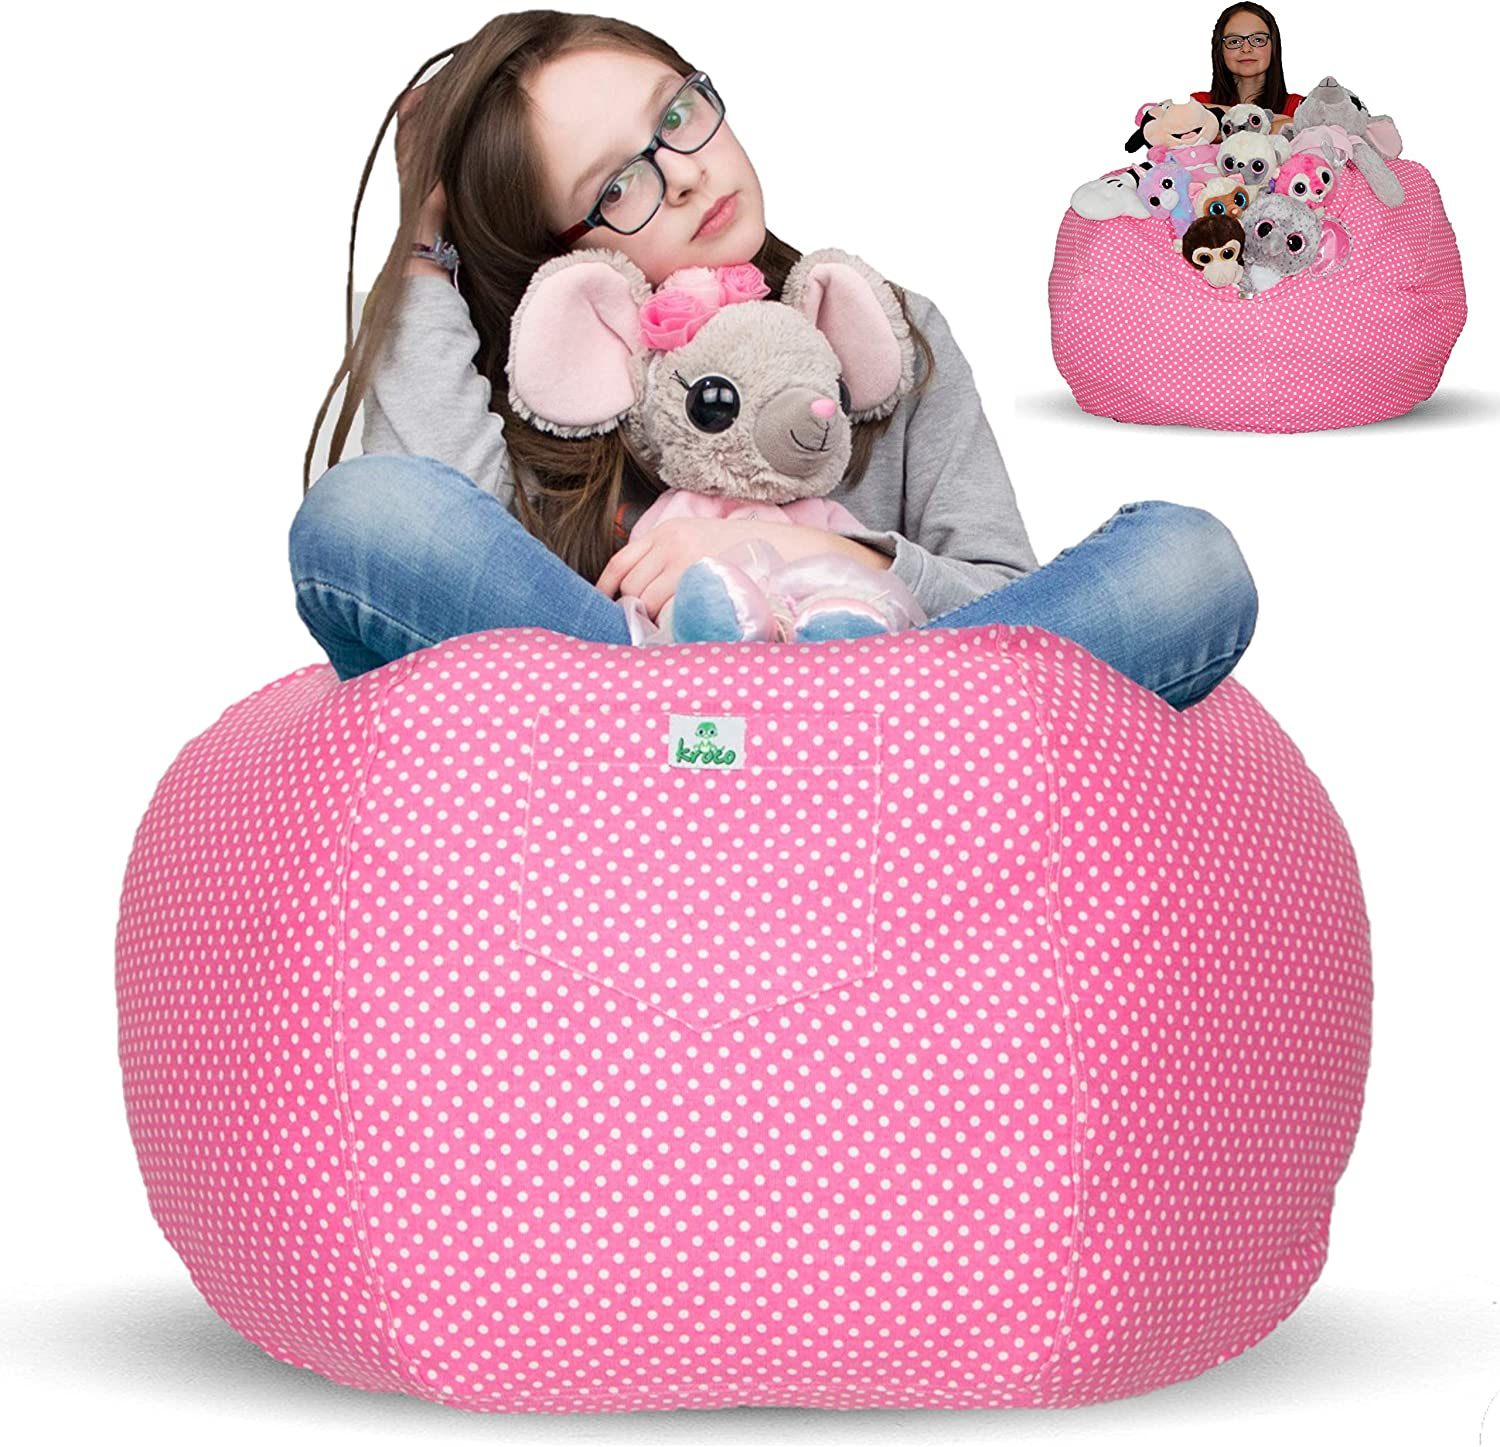 Fur Real Stuffed Animals, Amazon Com Kroco Stuffed Animal Storage Bean Bag Chair For Kids Room Stuff N Sit Toy Storage Pouf Beanbag Cover For Girls Boys Creative Organizer Seat Holder Childrens